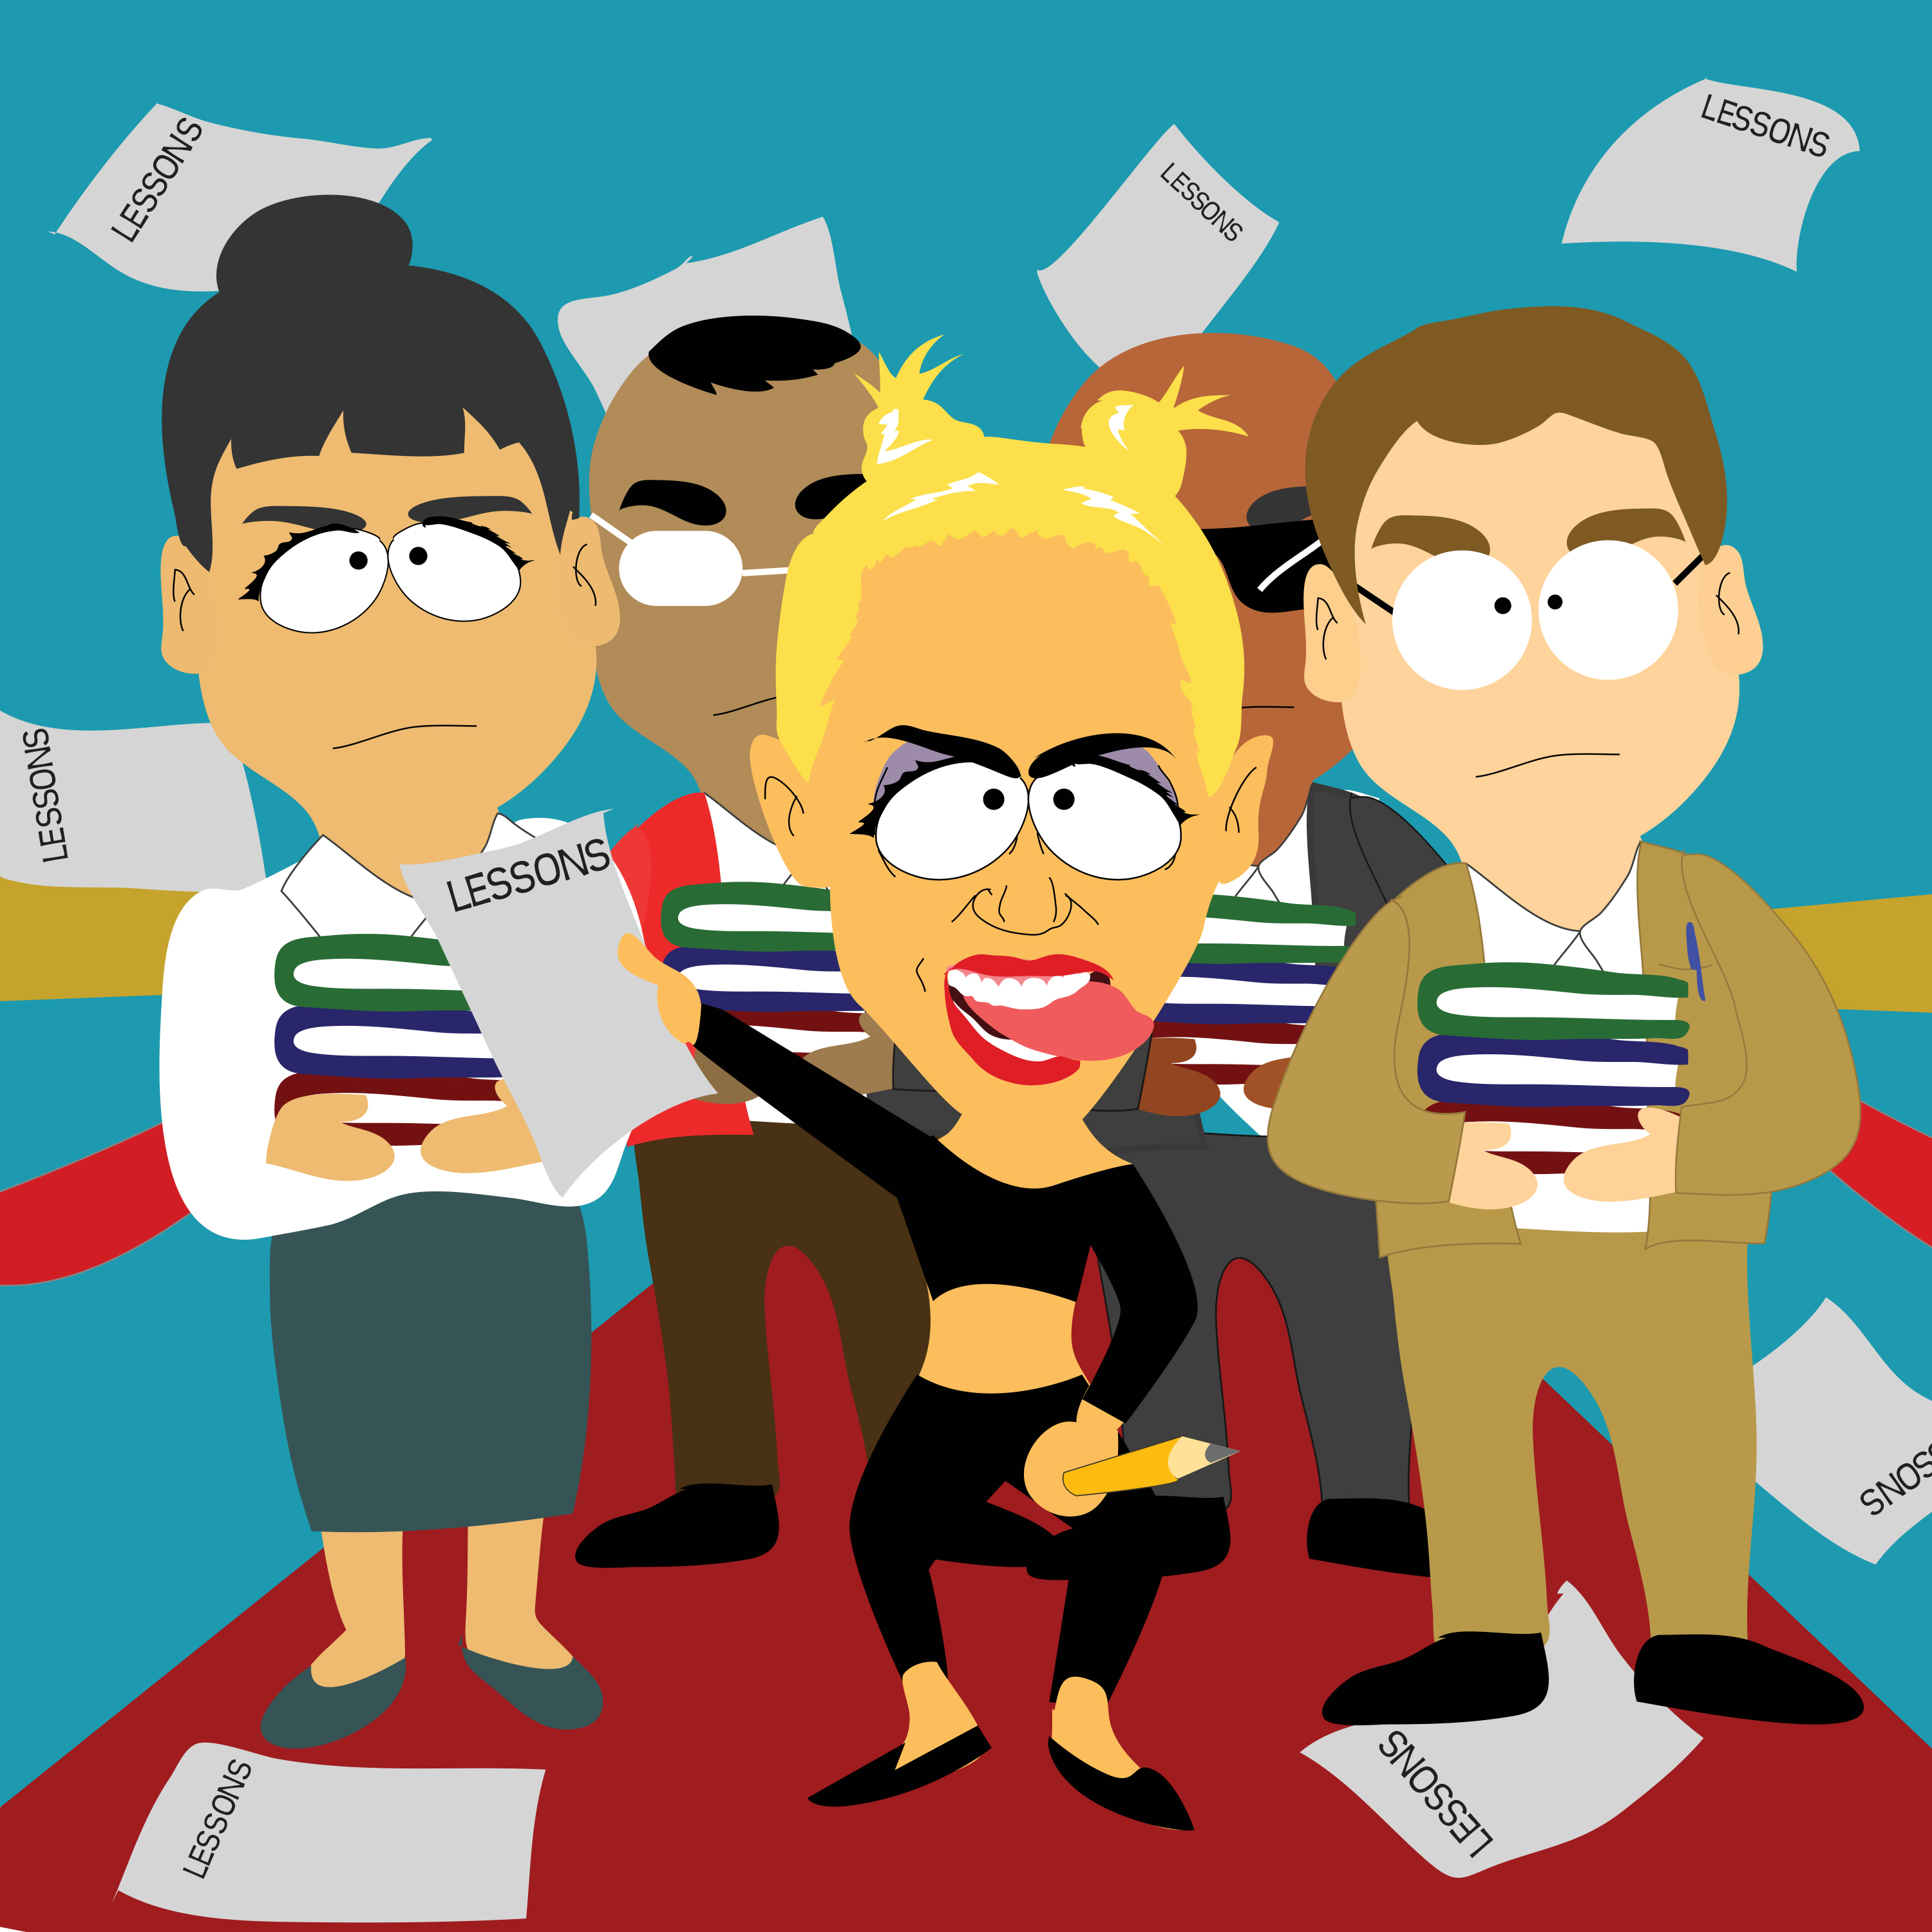 make a caricature of you South Park style